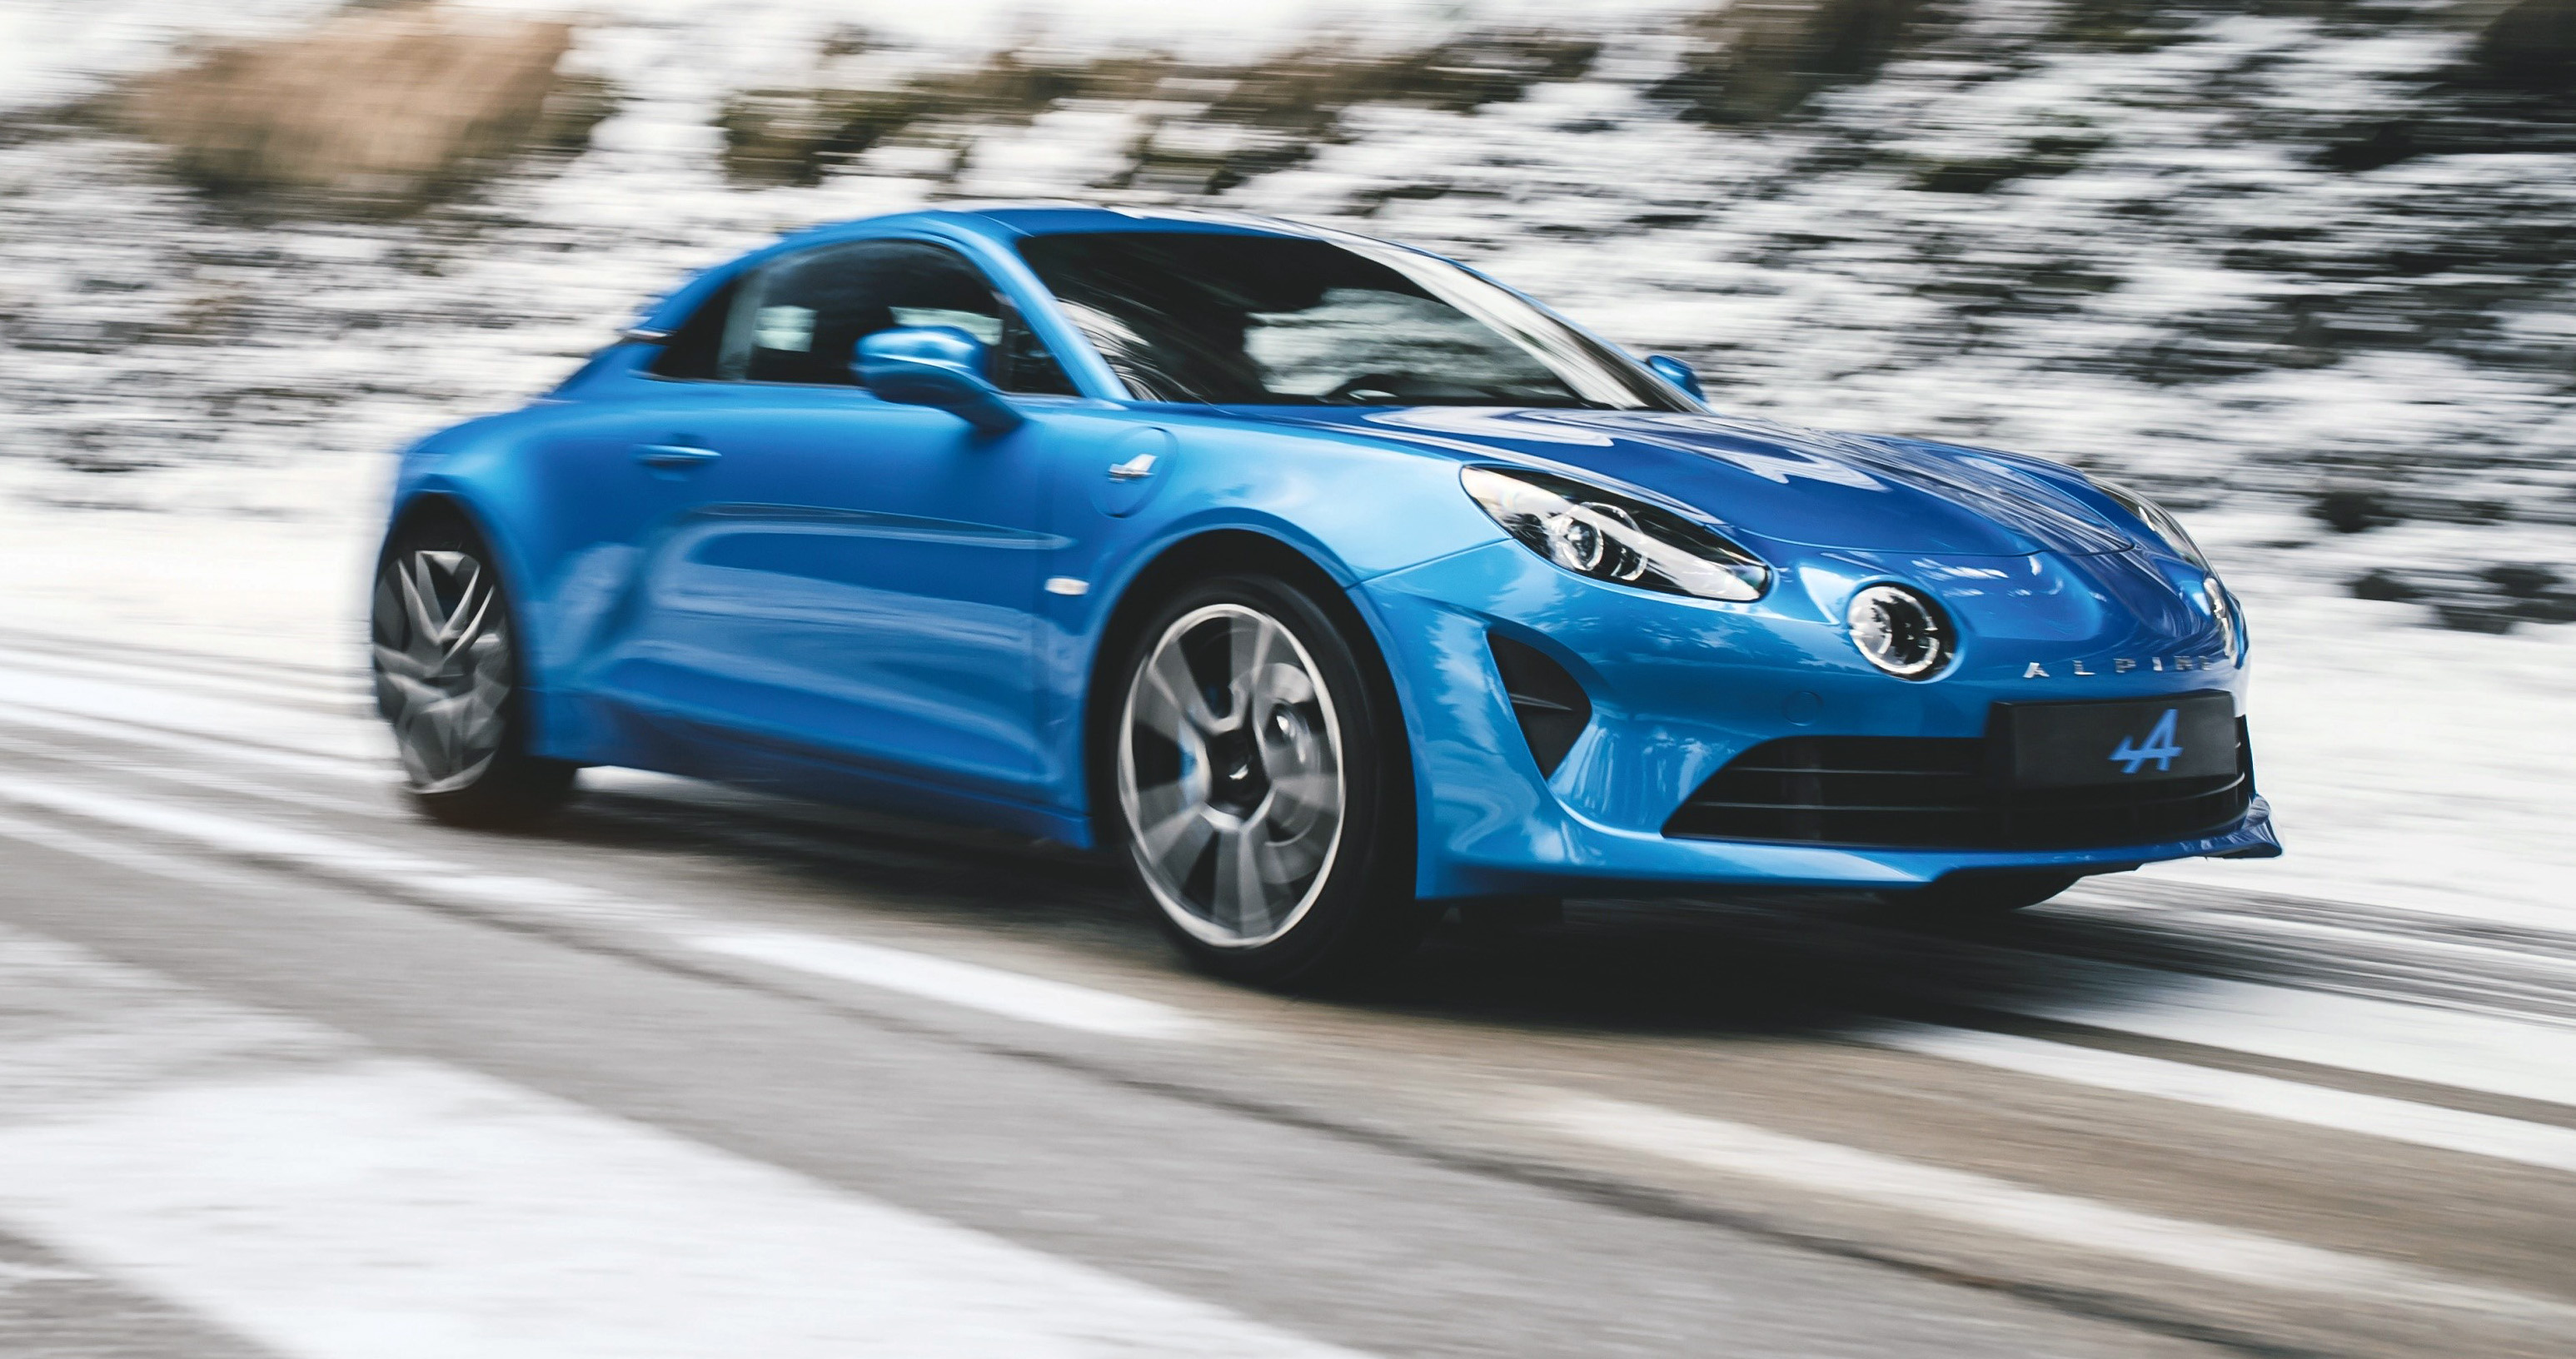 2018 Alpine A110 detailed: video - photos | CarAdvice